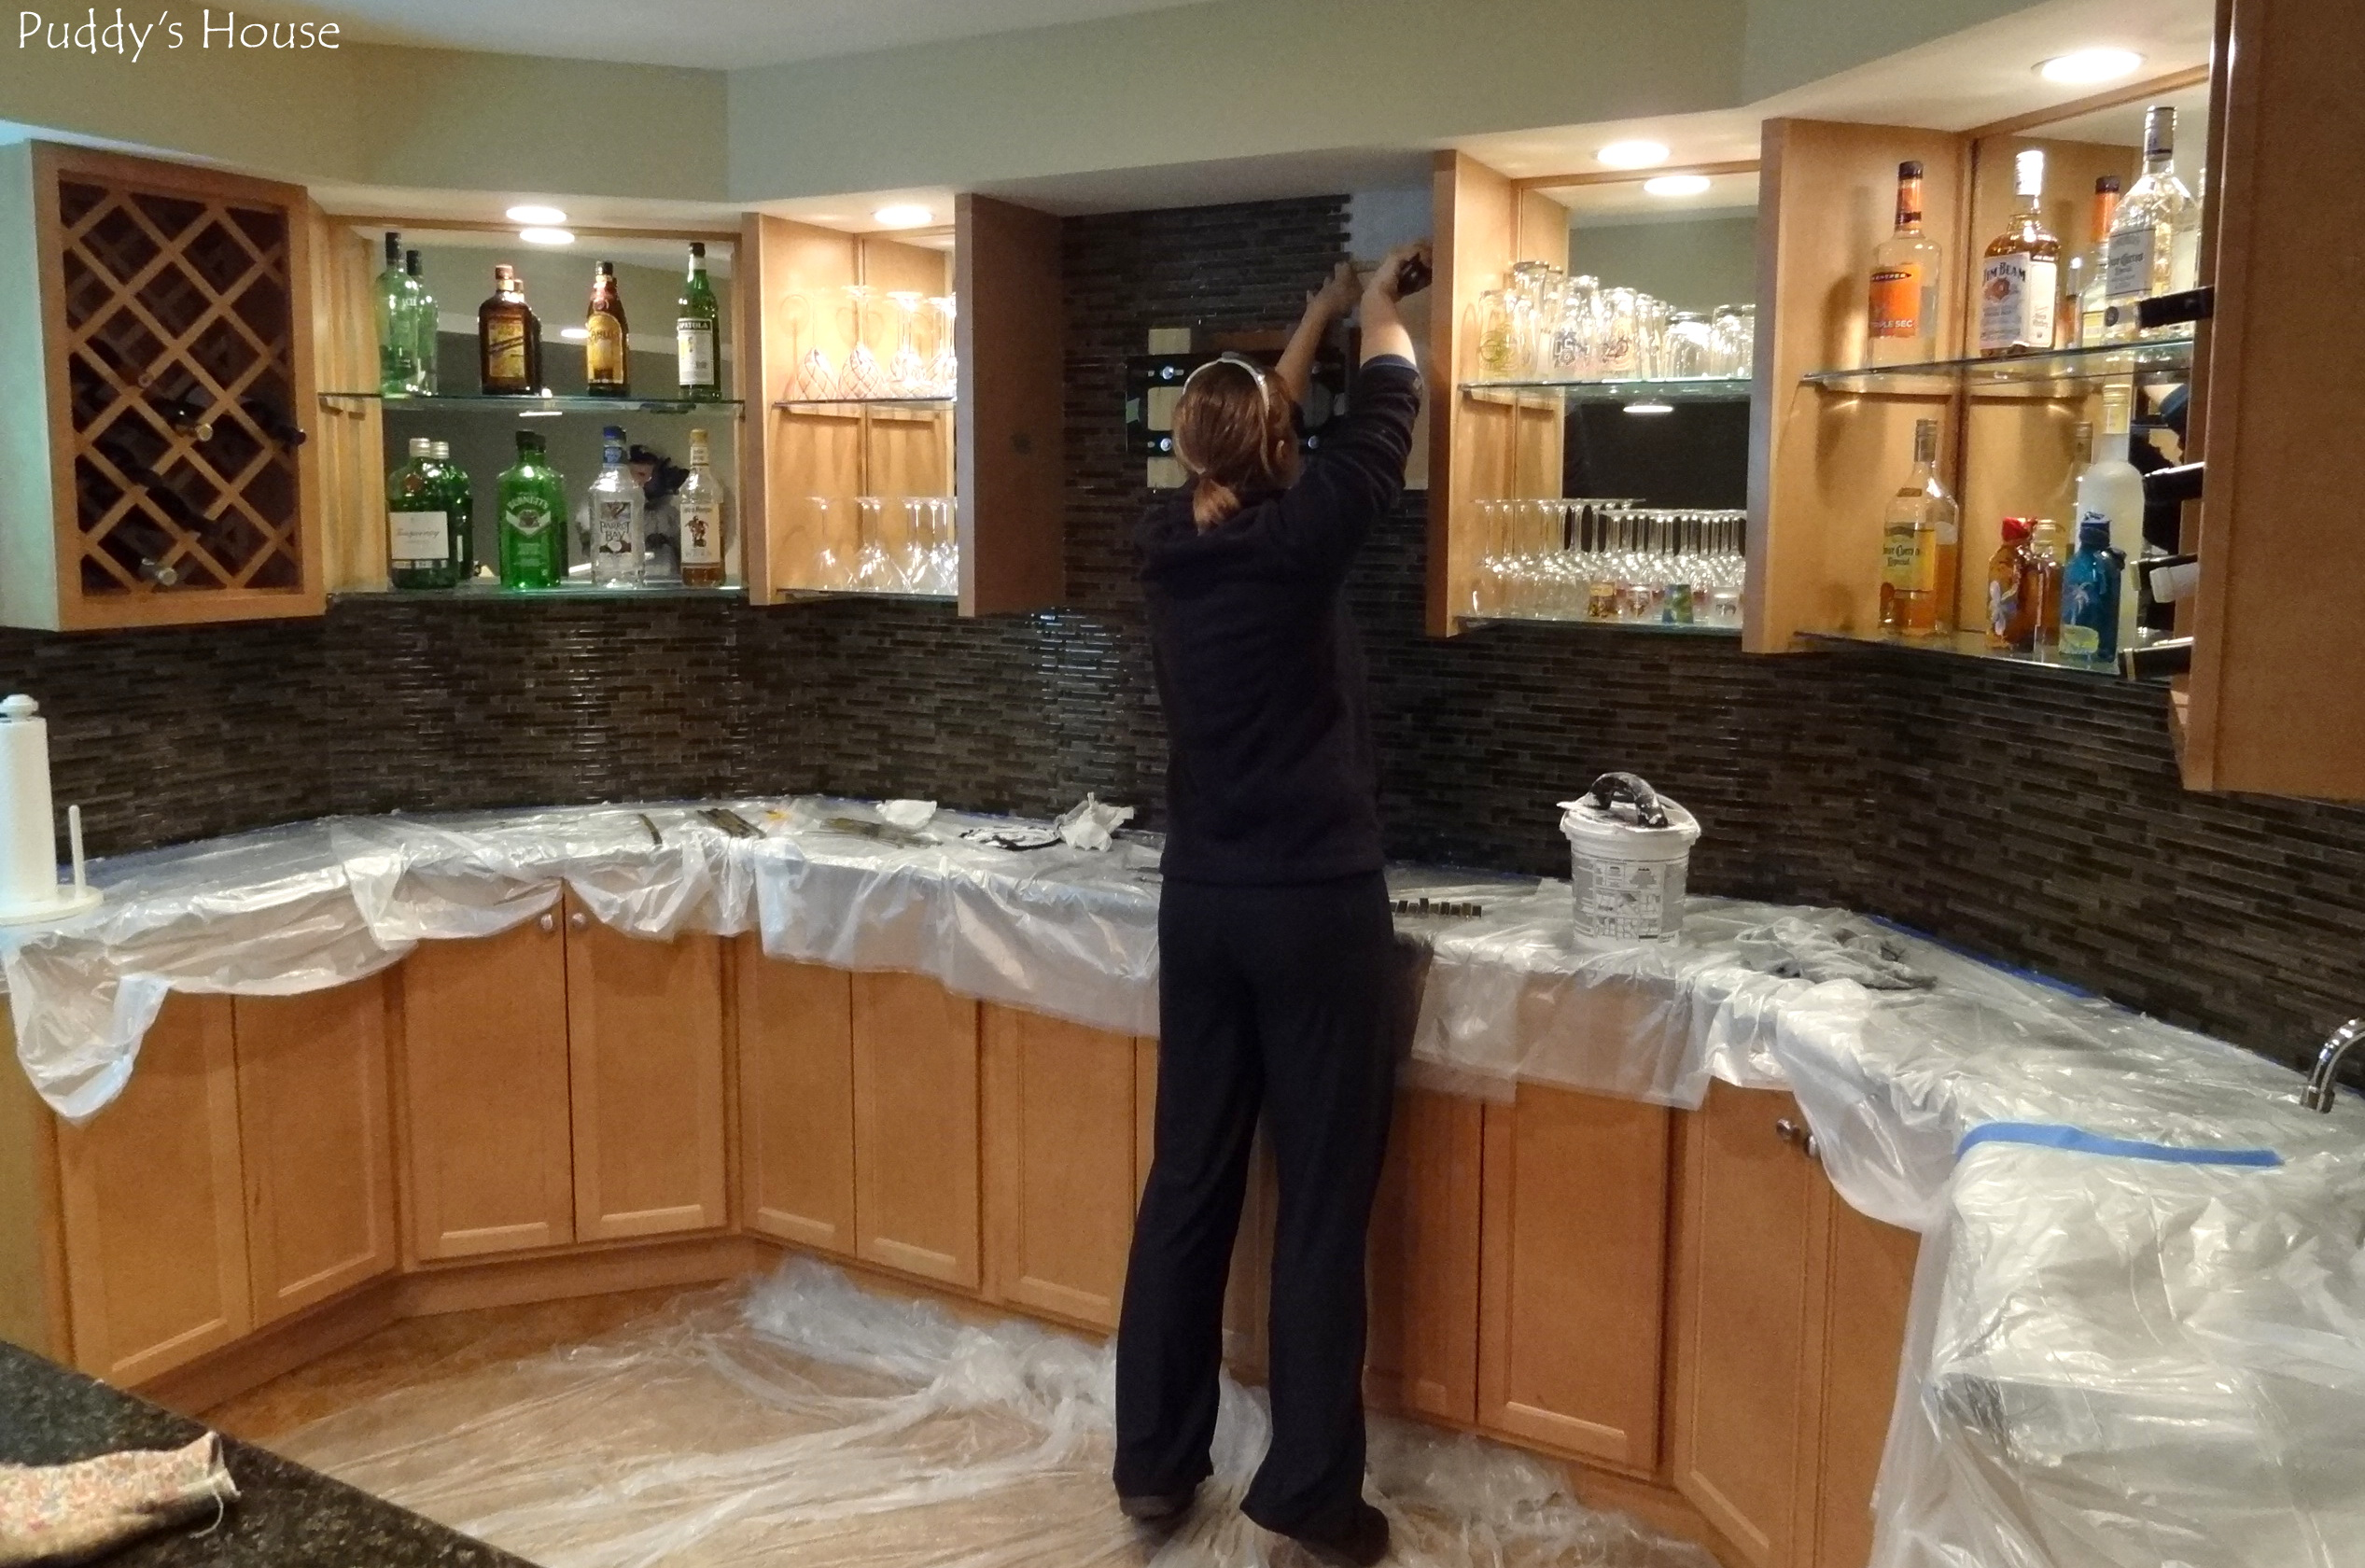 Wet Bar Backsplash Ideas Part - 44: Cool Bar Backsplash Creative Kitchen Backsplash Ideas Wet Bar